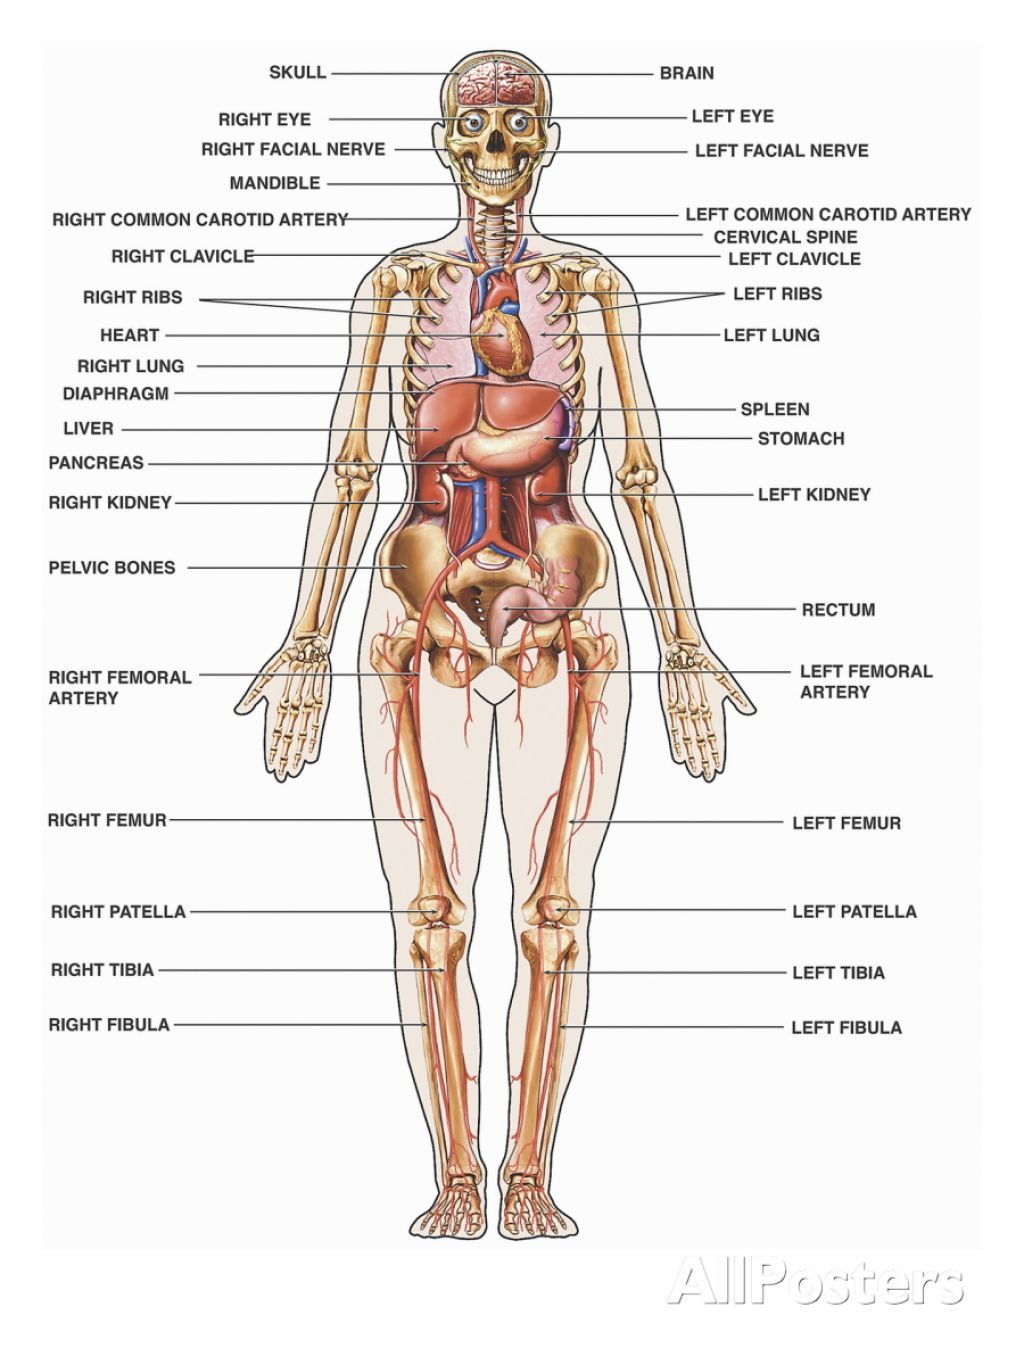 Human Body Parts Labeled Anatomy Human Body Parts | Mell.tk | 1 ...